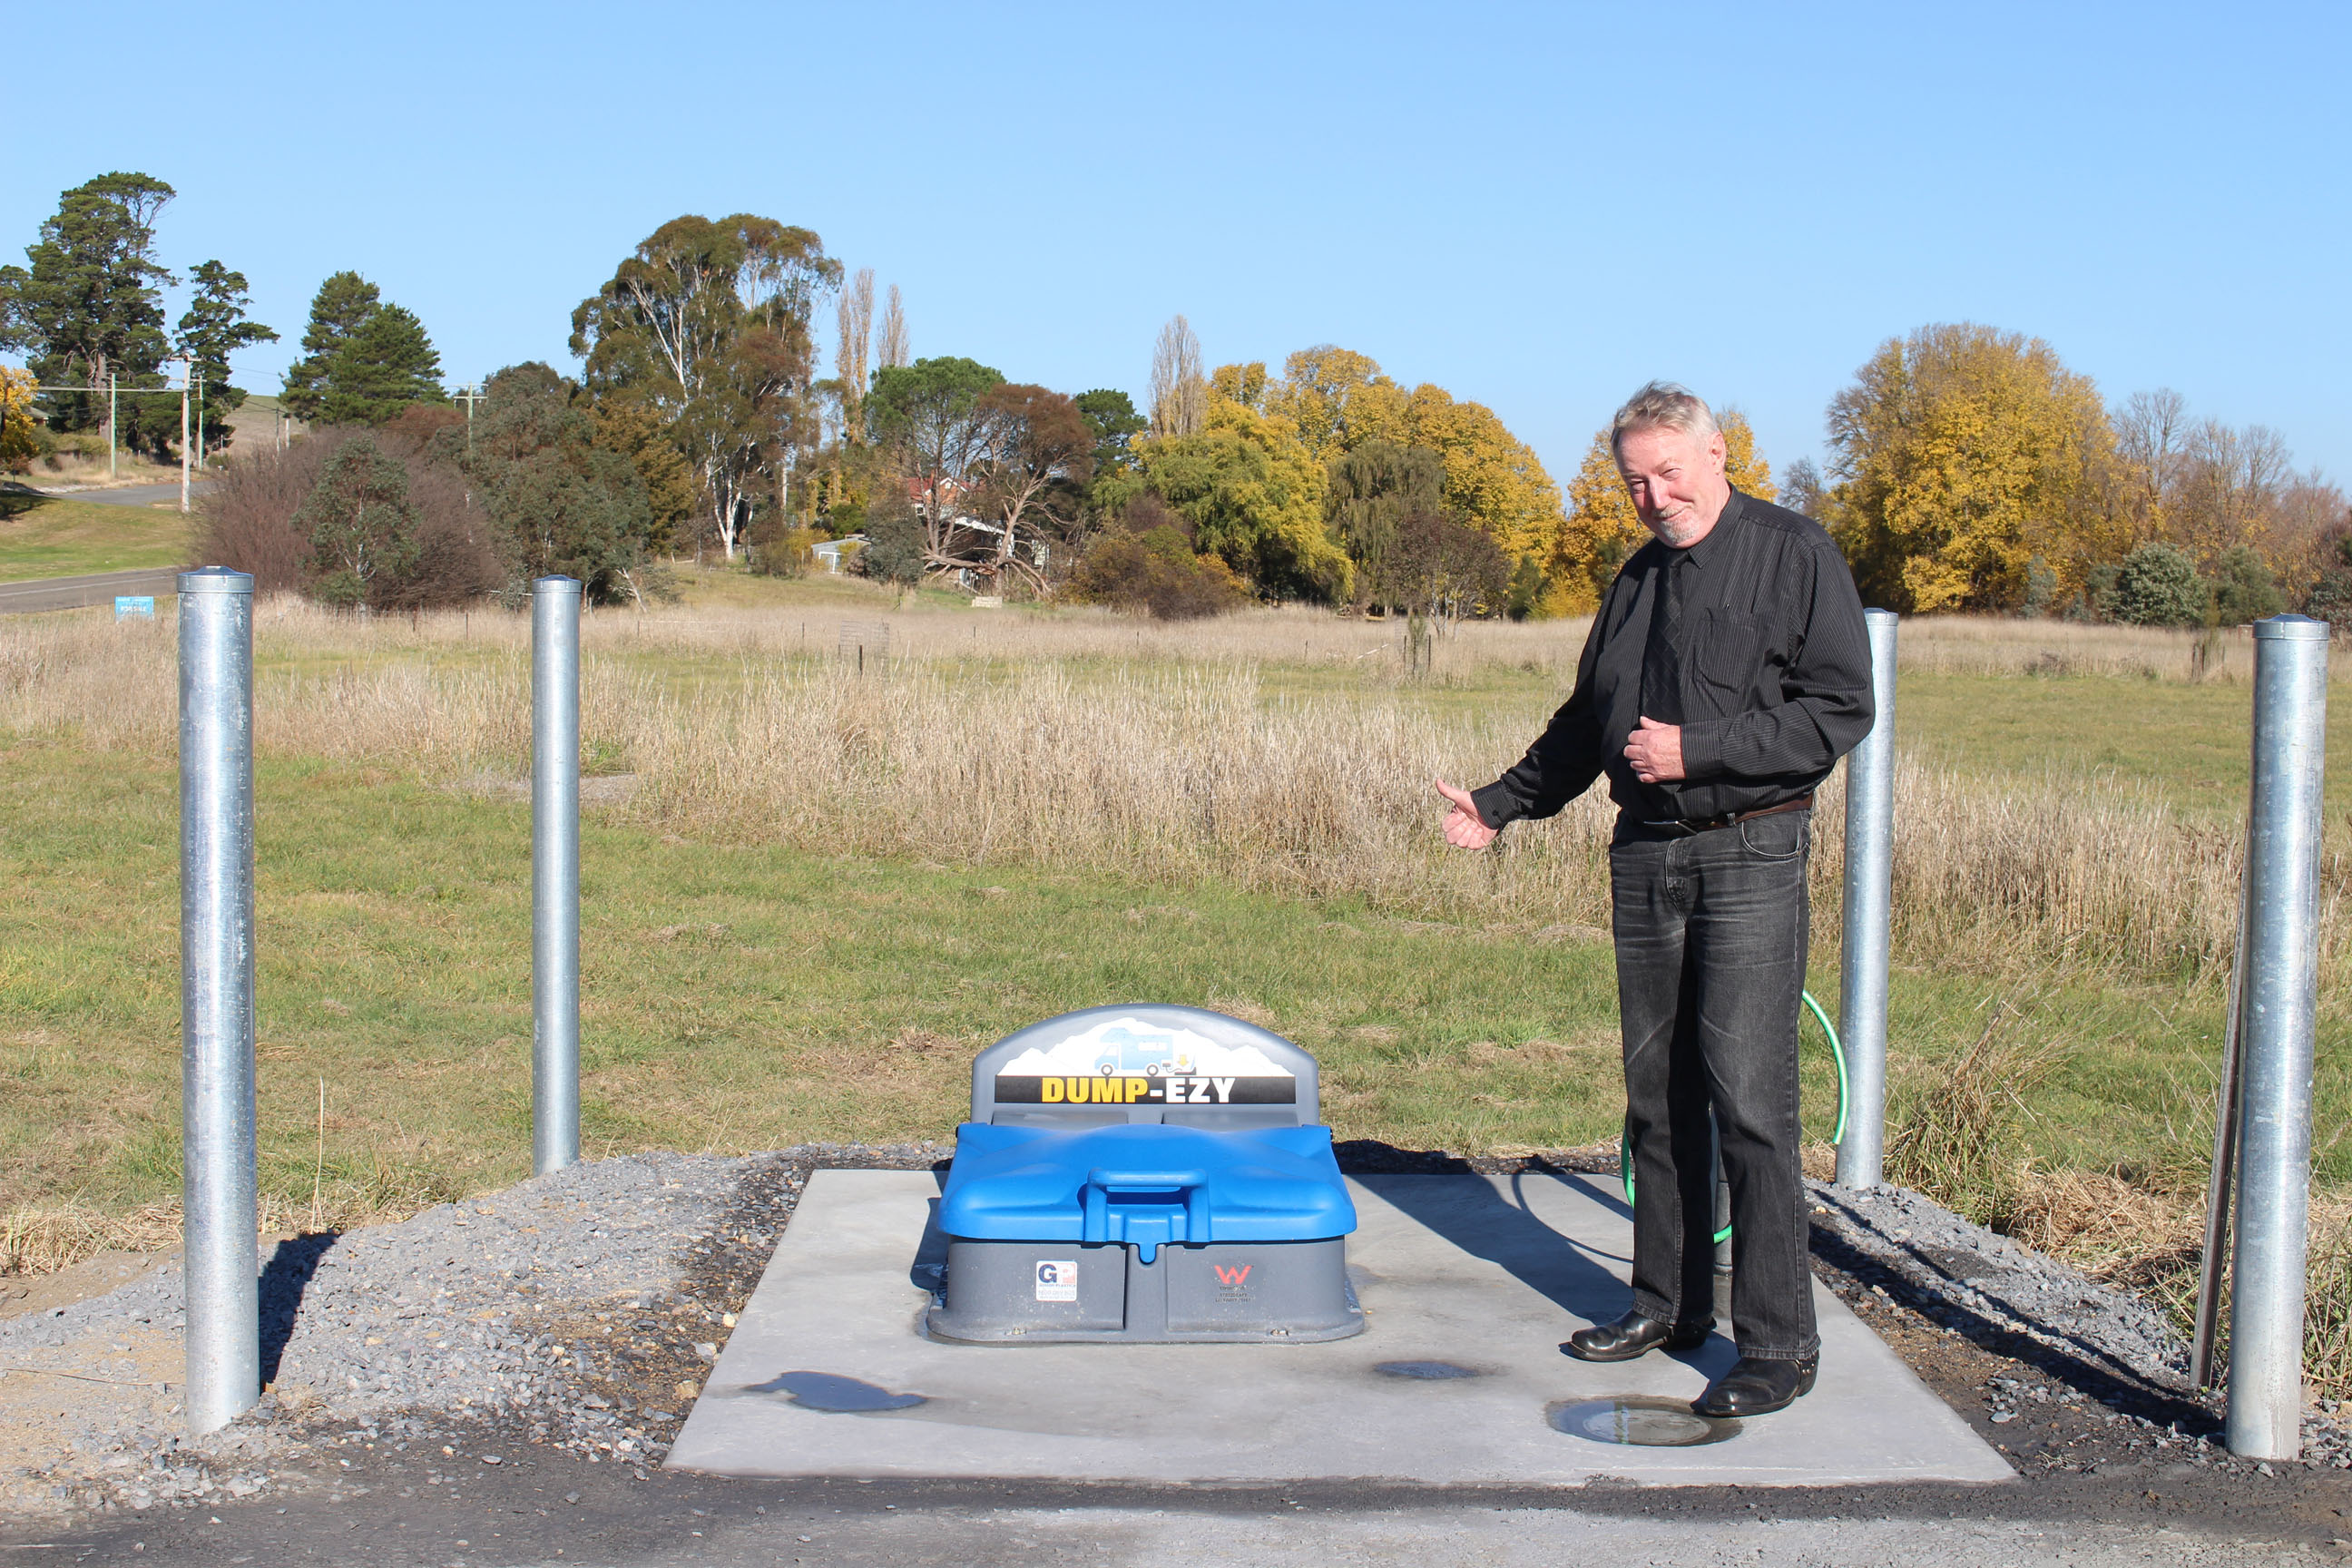 Upper Lachlan Shire Councillor John Searl JP gives the new Dump-Ezy station at Gunning the thumbs up.